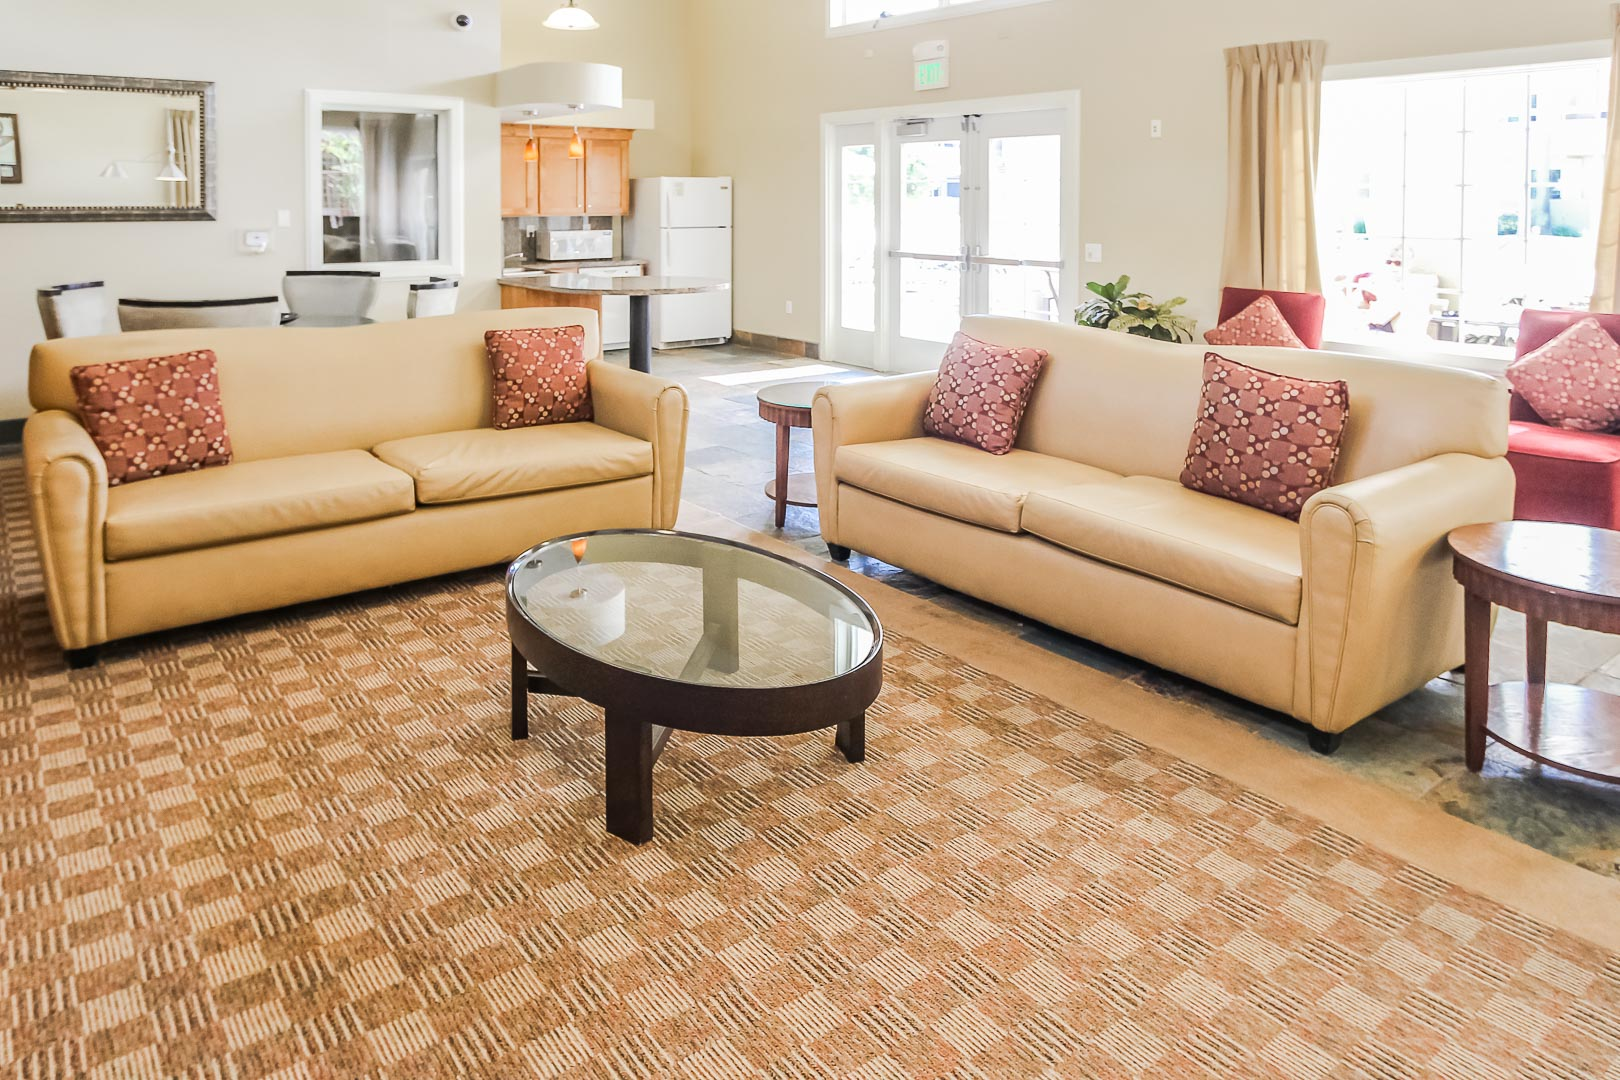 A community kitchen and living room area at VRI's Winner Circle Resort in California.